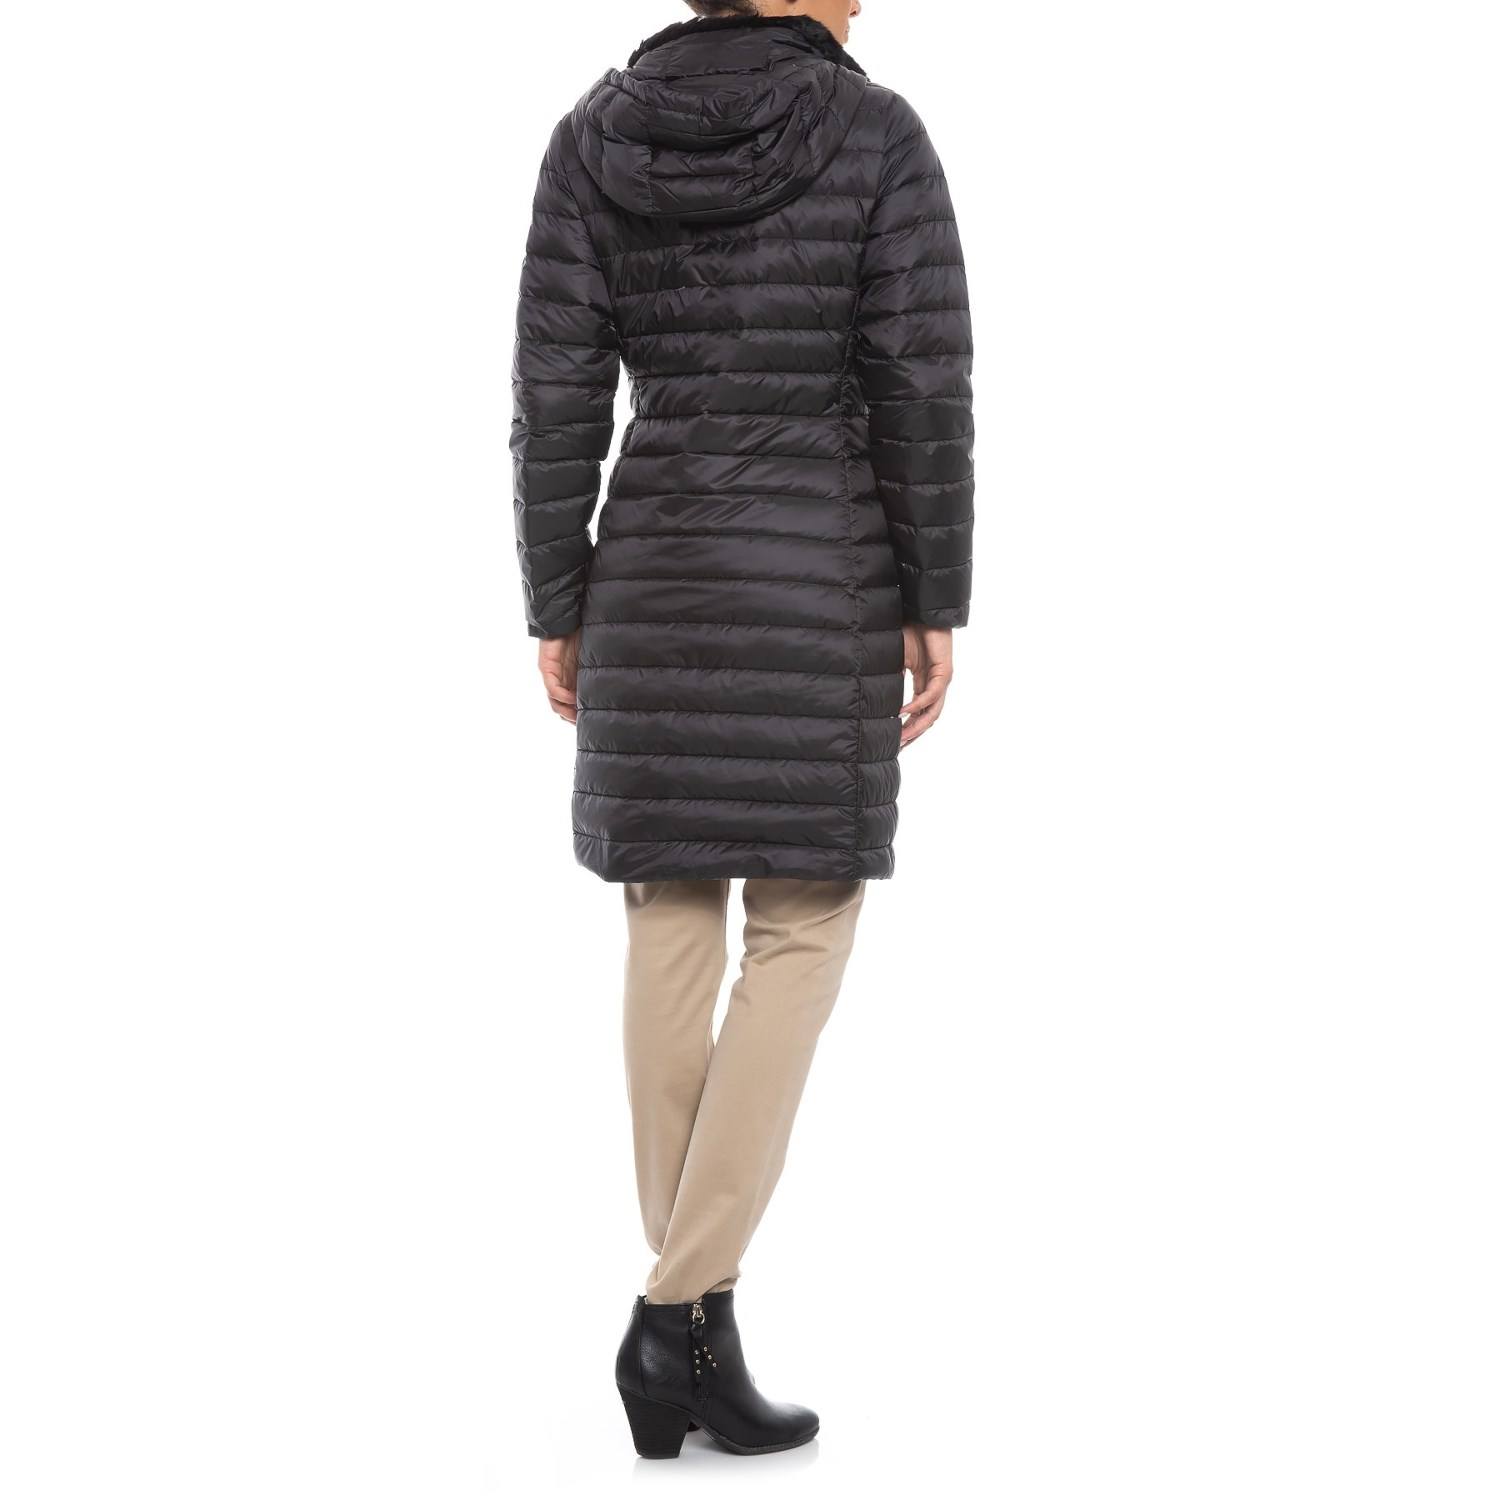 4473d4eee944 Cole Haan Signature Faux-Fur-Lined Long Down Coat (For Women) - Save 46%